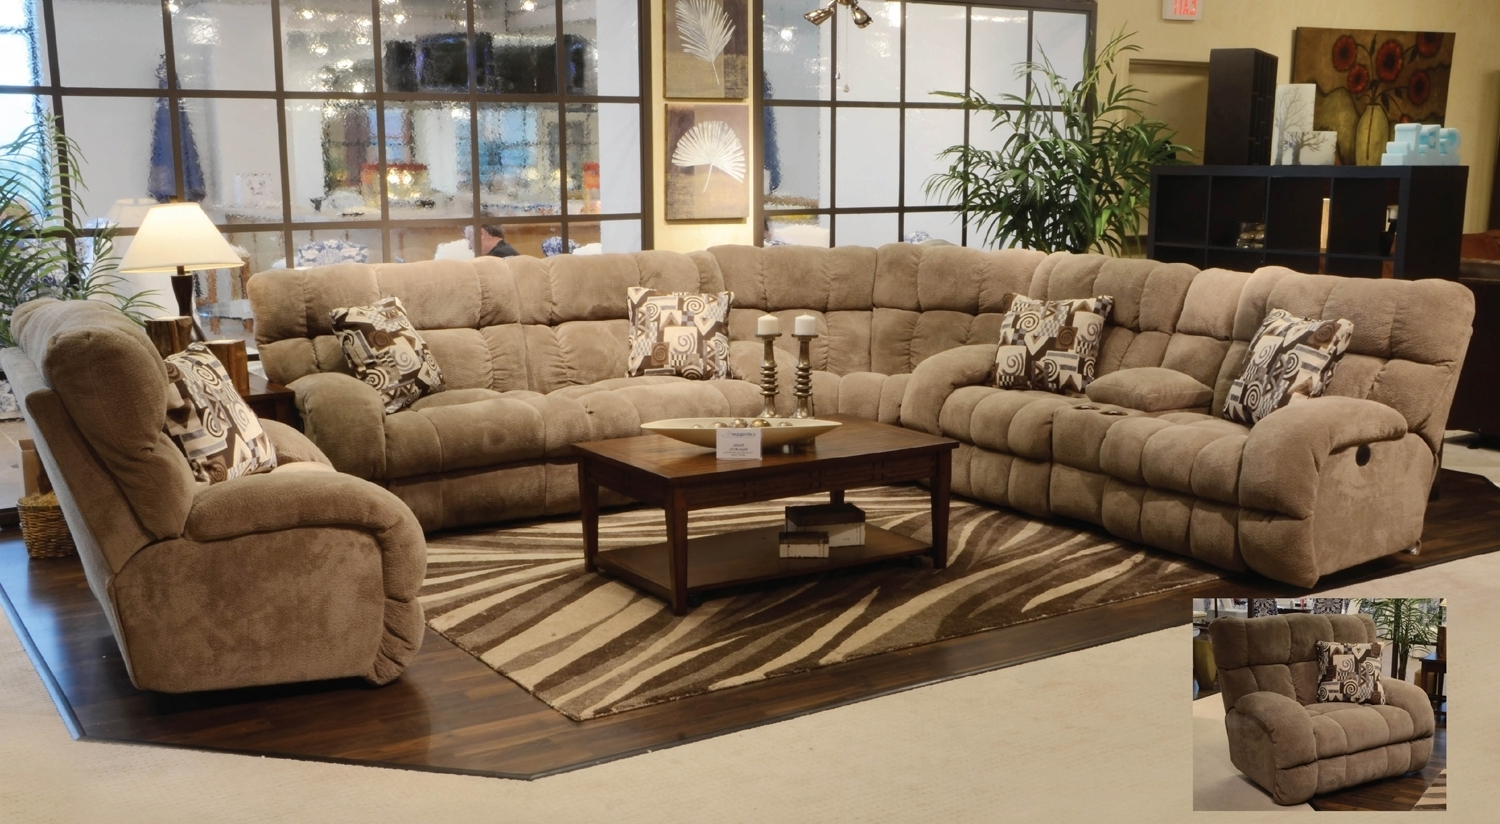 Sofa : Fascinating Large Sectional Sofa Modern Sofas Large Within 2018 Extra Large U Shaped Sectionals (View 17 of 20)